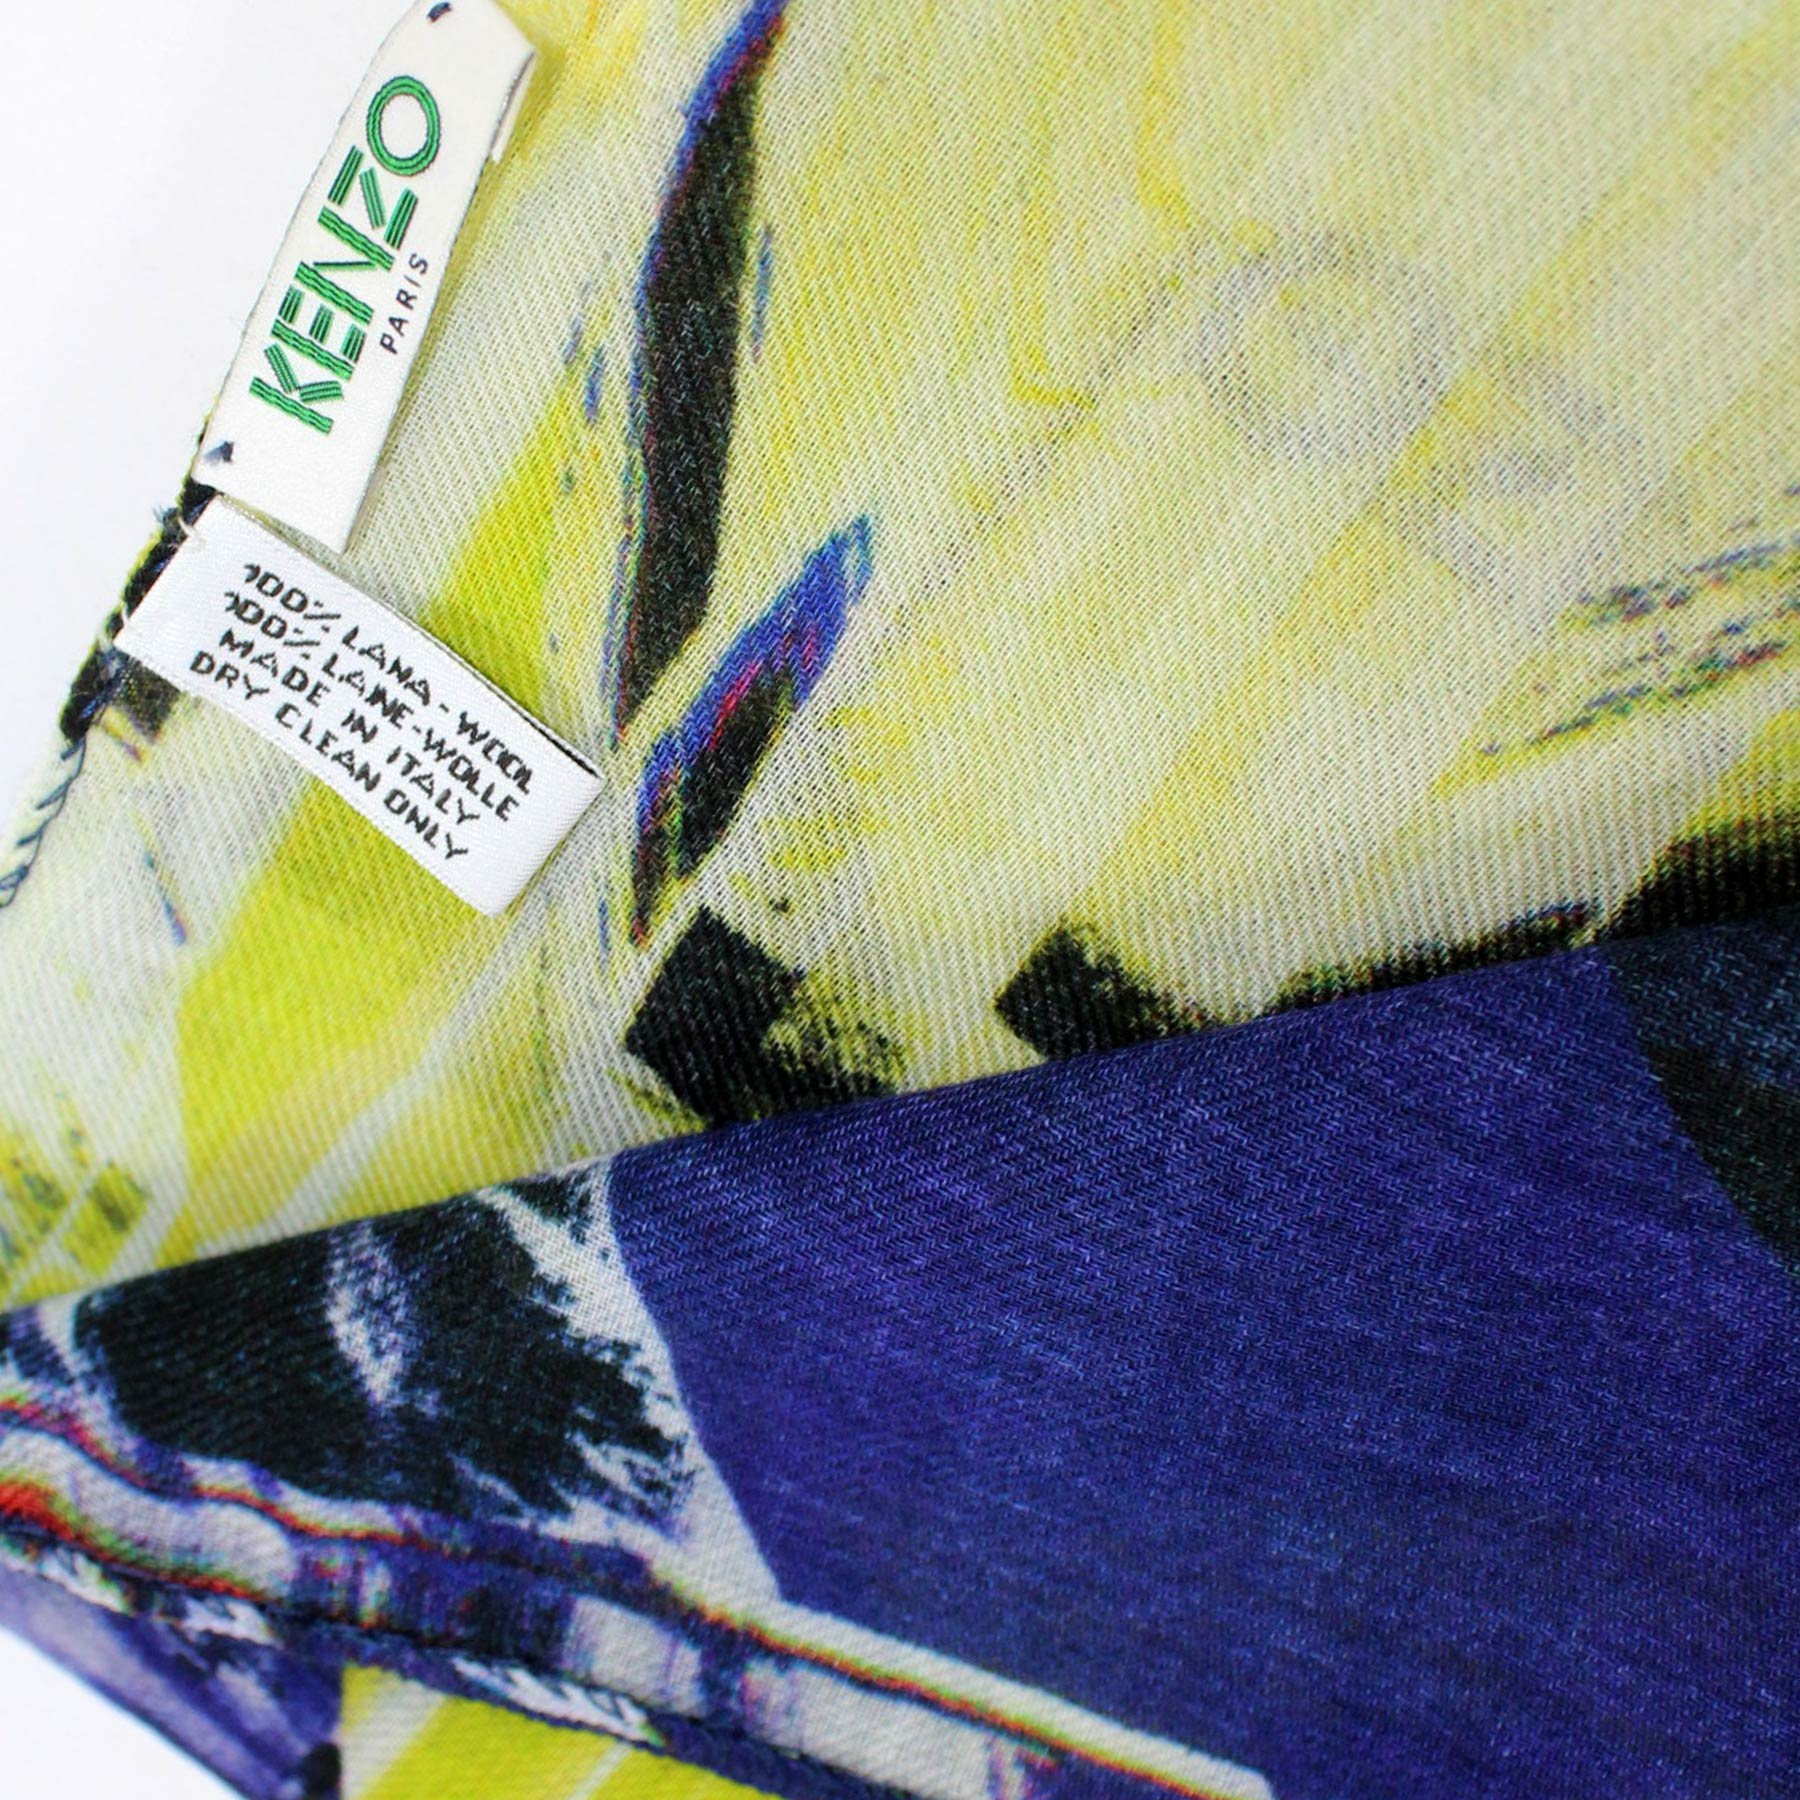 Kenzo Scarf Royal Blue Lime Design - Wool Shawl SALE